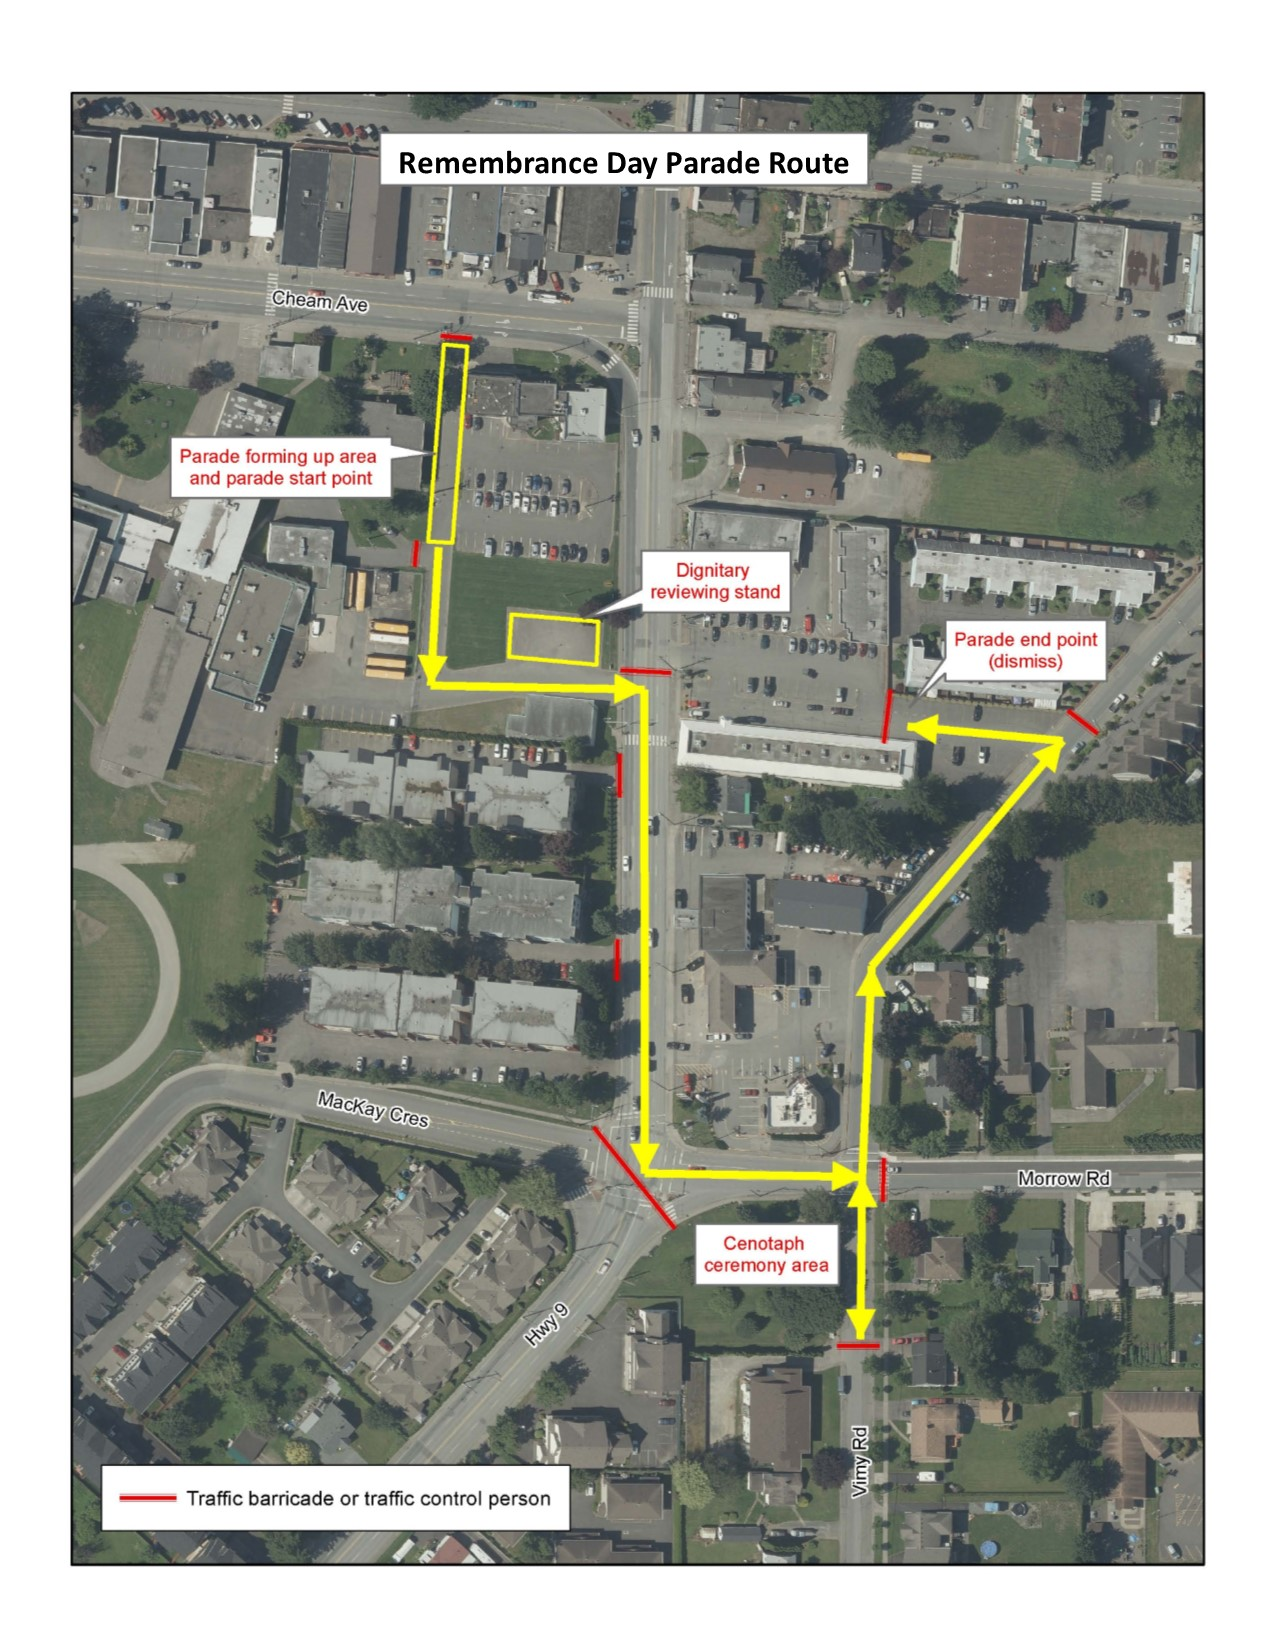 Remembrance Day parade route